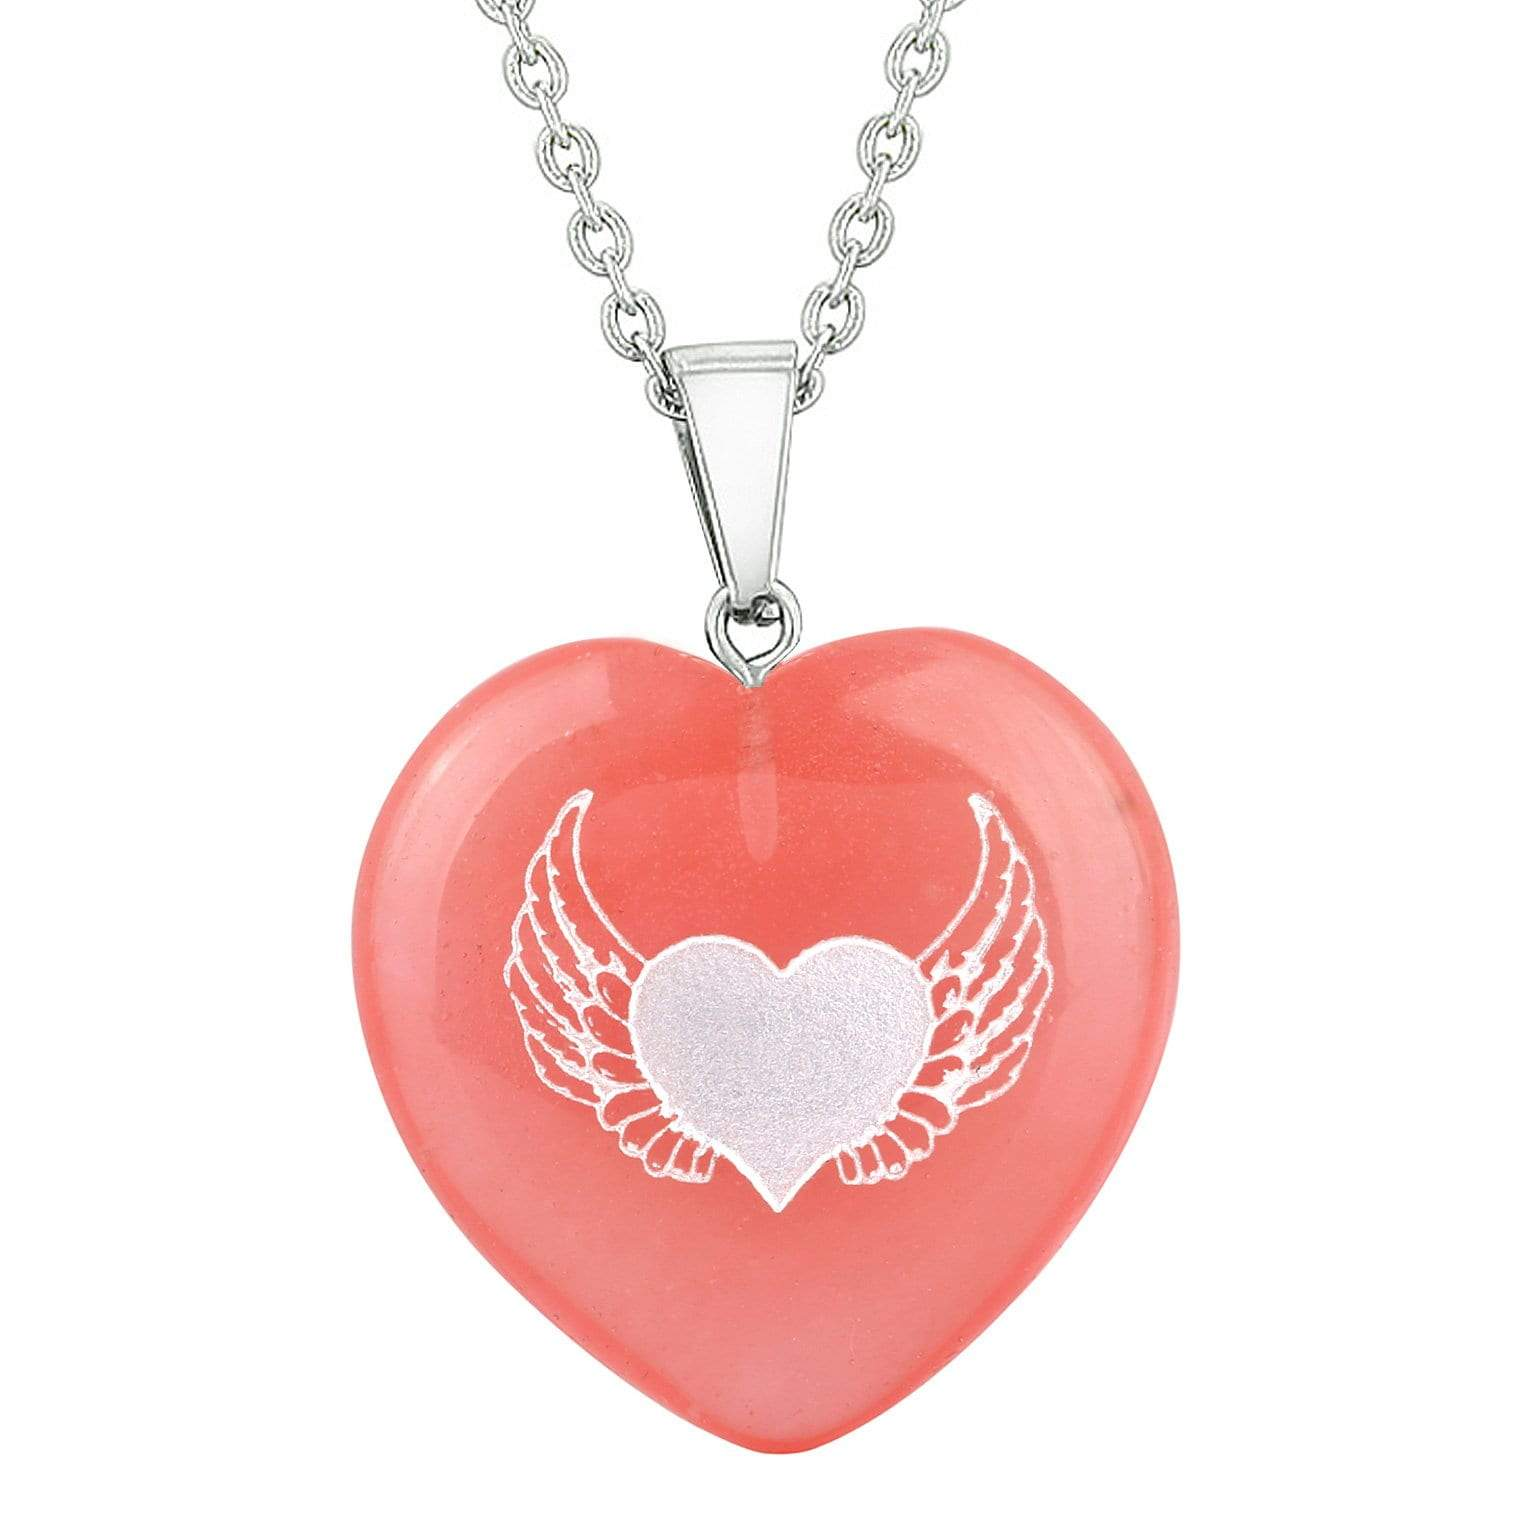 Amulet Angel Wings Heart Love Powers Energy Cherry Simulated Quartz Puffy Heart Pendant Necklace